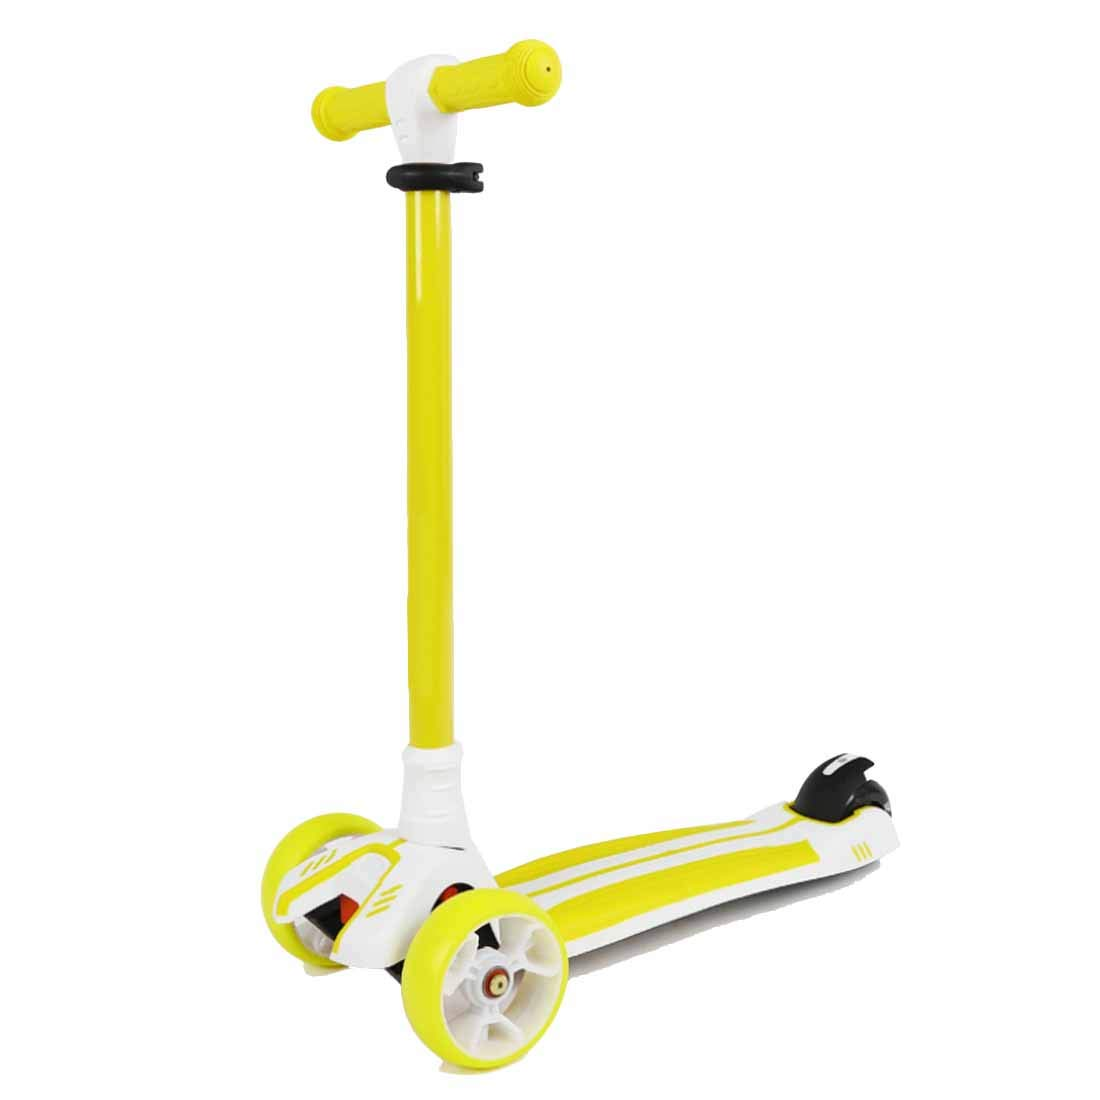 MYMGG Kick Scooter for Kids - 3 Wheels Scooter with Adjustable Height Extra-Wide Deck PU Flashing Wheels,Yellow